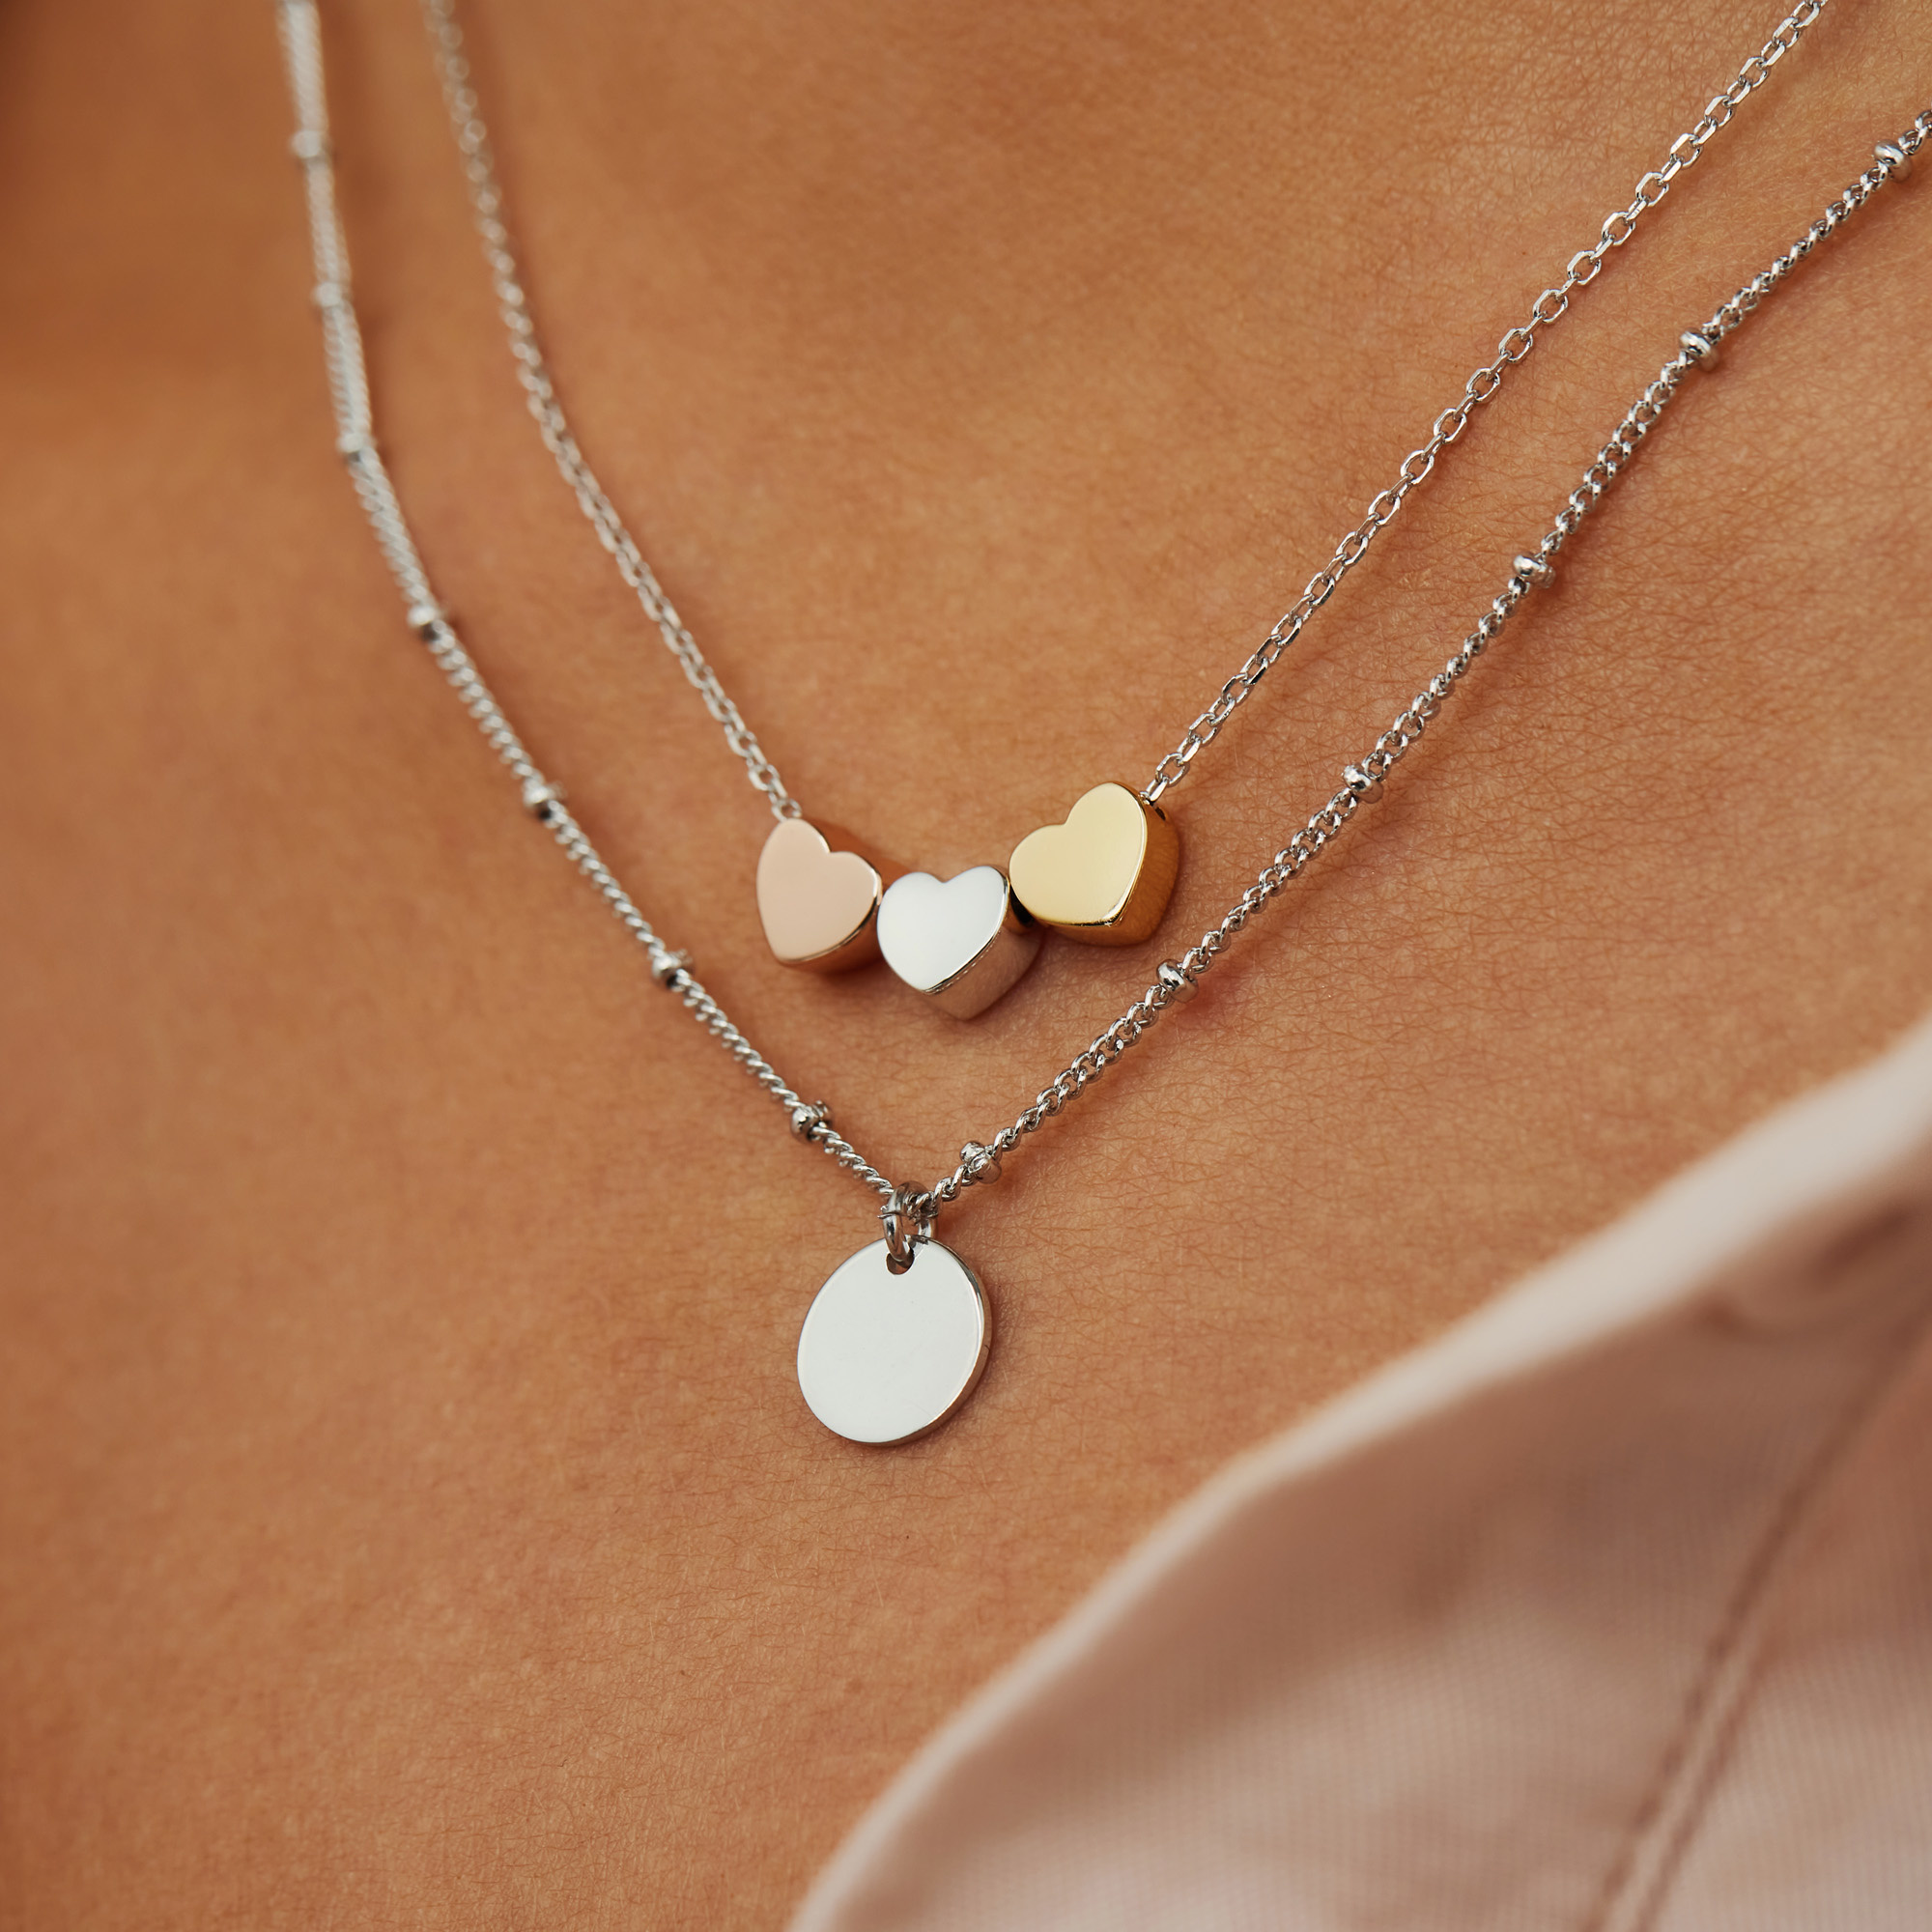 Selected Jewels Aimée 925 sterling silver necklace with 3 hearts